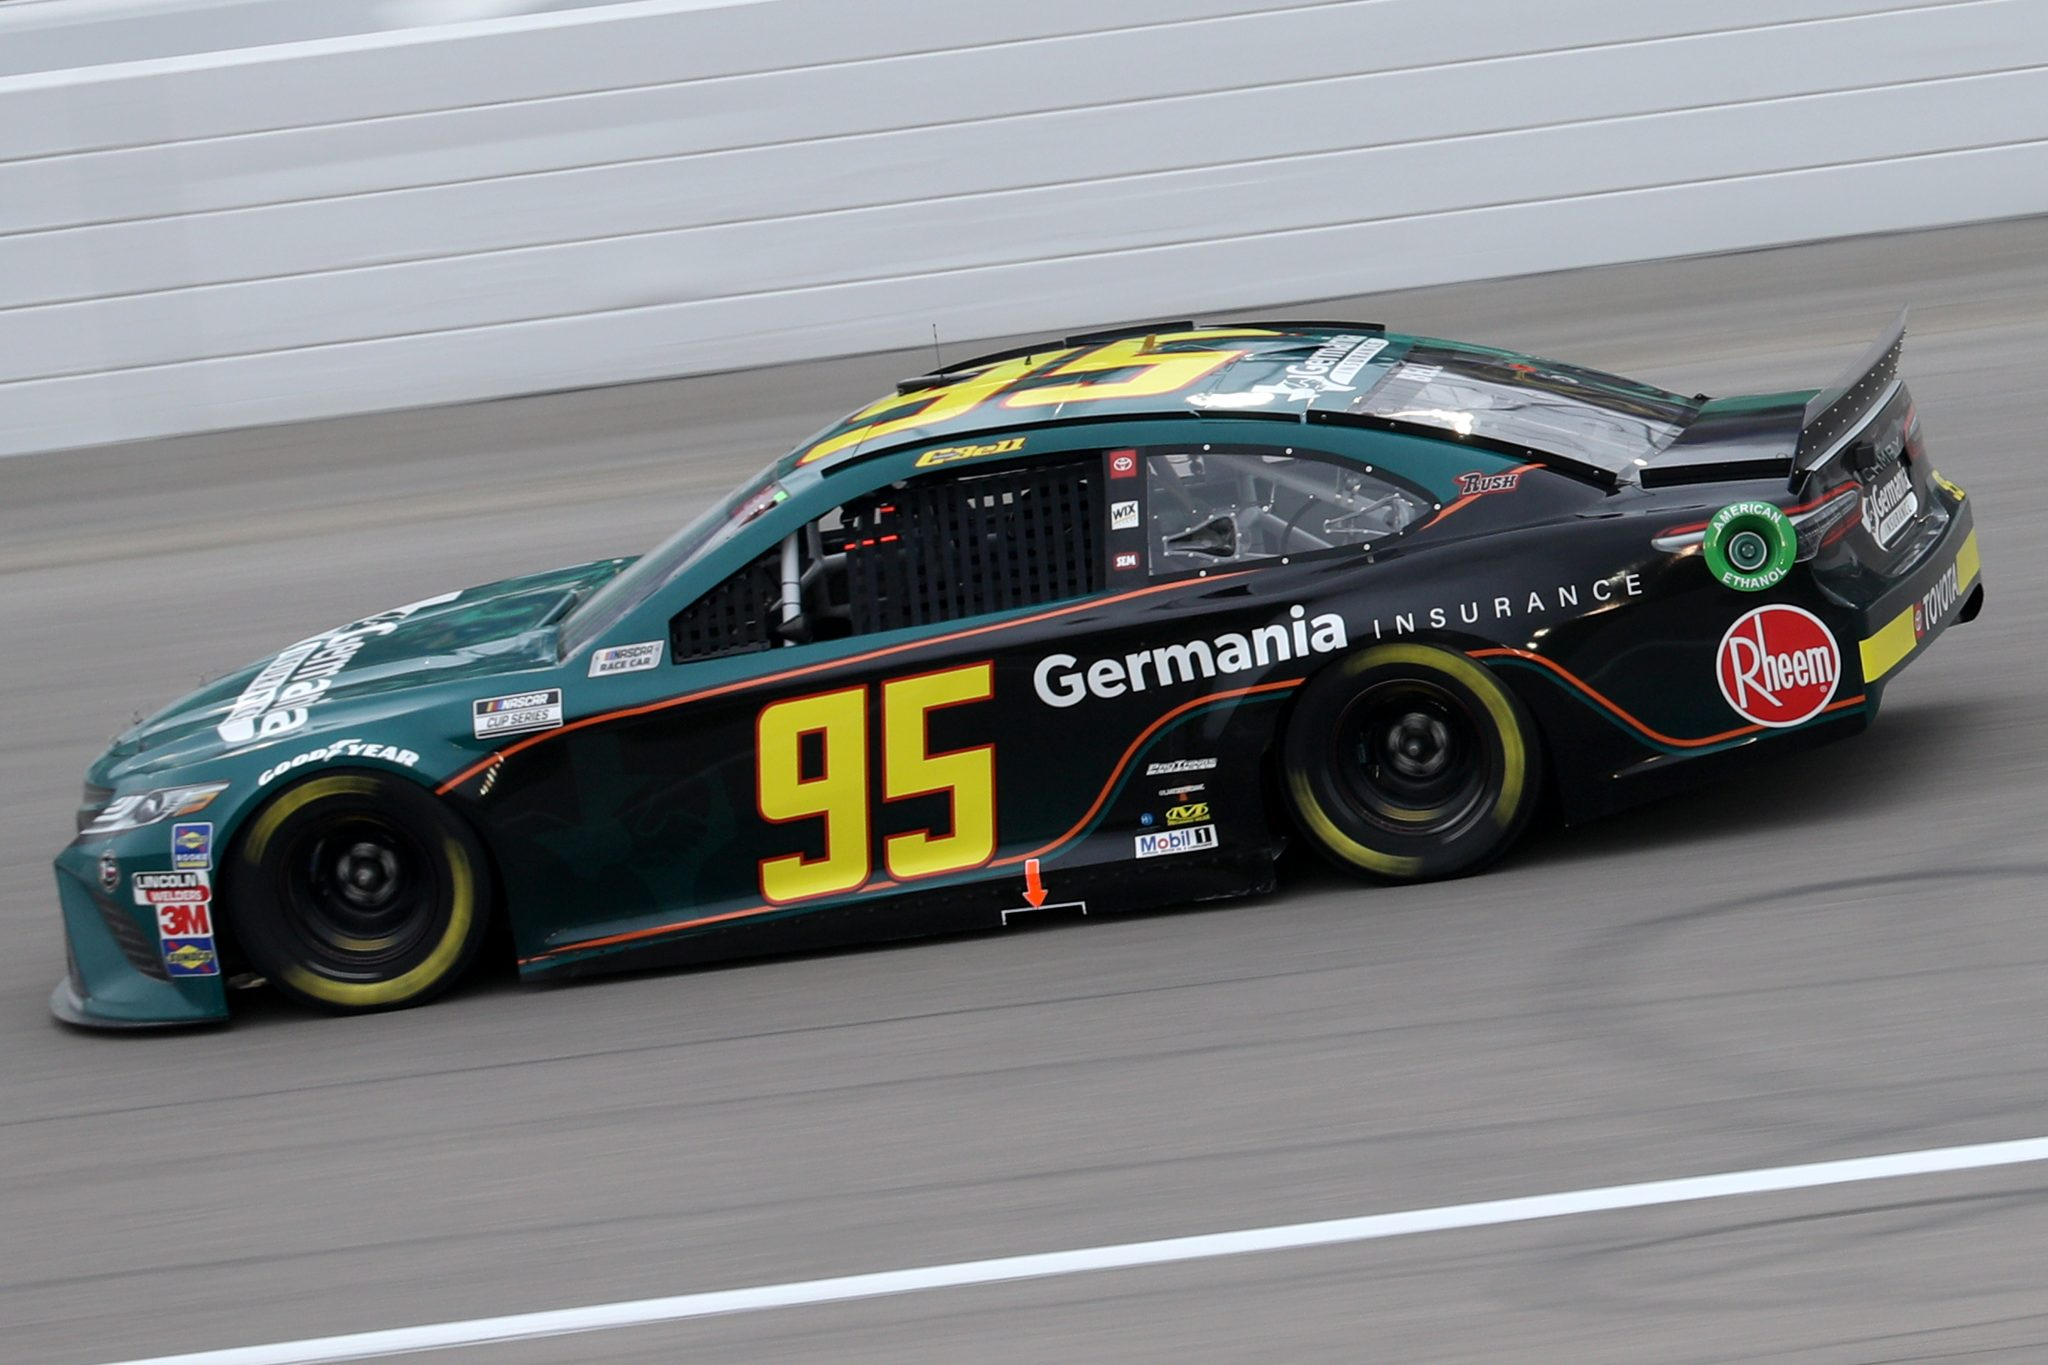 KANSAS CITY, KANSAS - OCTOBER 18: Christopher Bell, driver of the #95 Germania Insurance Toyota, drives during the NASCAR Cup Series Hollywood Casino 400 at Kansas Speedway on October 18, 2020 in Kansas City, Kansas. (Photo by Chris Graythen/Getty Images) | Getty Images